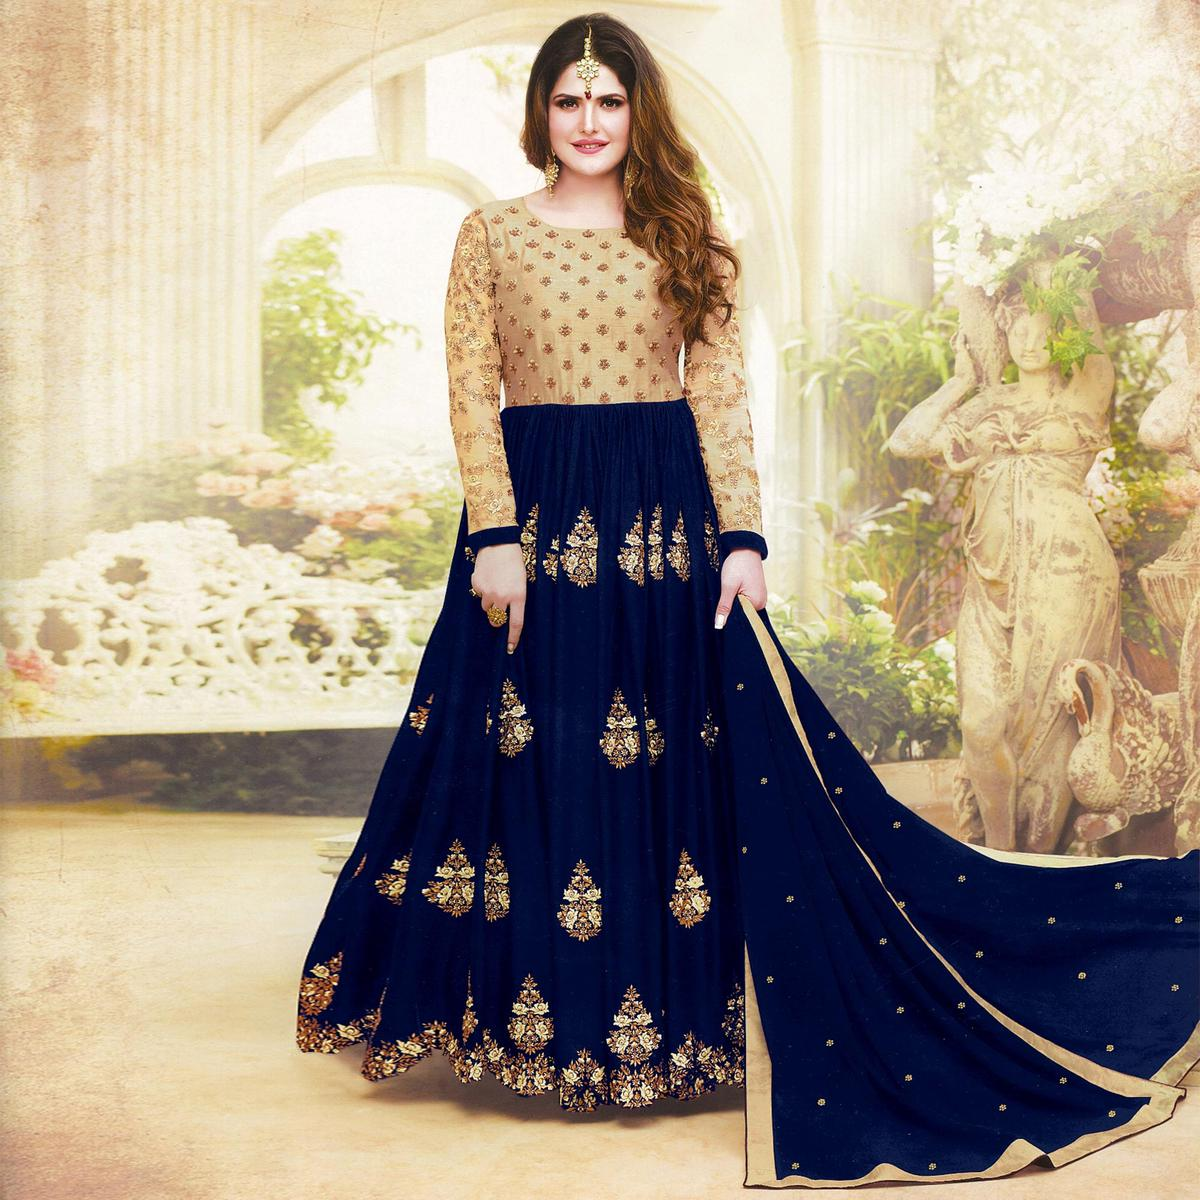 58b4b14970 Buy Ravishing Navy Blue Colored Embroidered Party Wear Georgette Anarkali  Suit for womens online India, Best Prices, Reviews - Peachmode